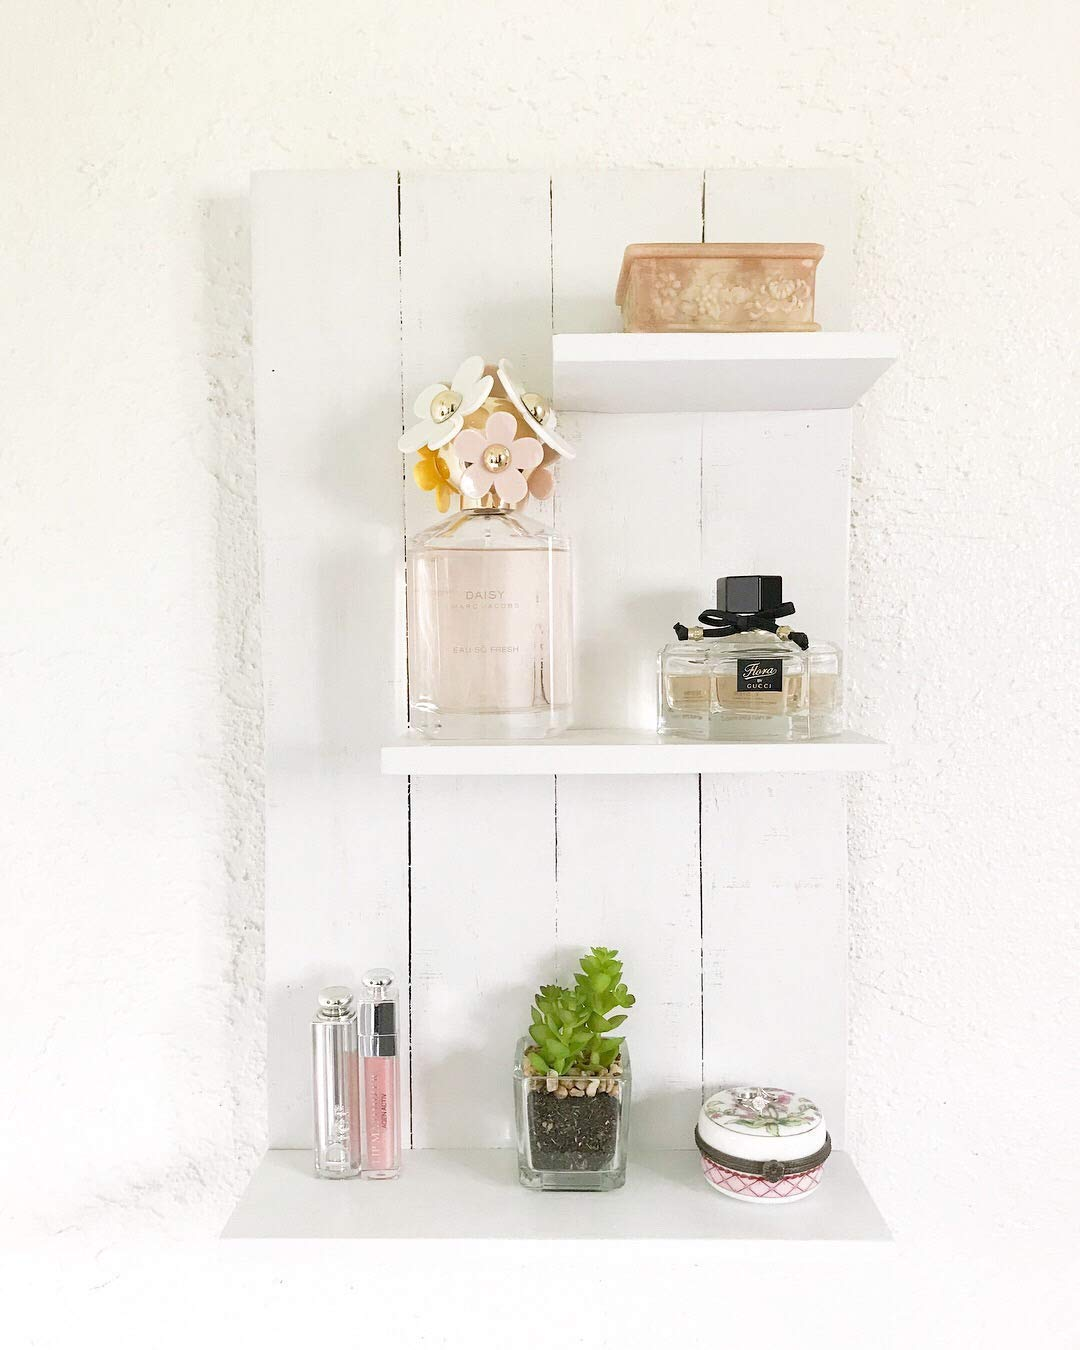 Wooden Shelf, Wooden Rustic White Shelf, Display Shelf, Wooden Shelf Organizer, Wall Shelf, Shelf, Perfume Shelf, Wooden White Shelf, White Organizer, Bathroom Shelf, White Bathroom Shelf, Display